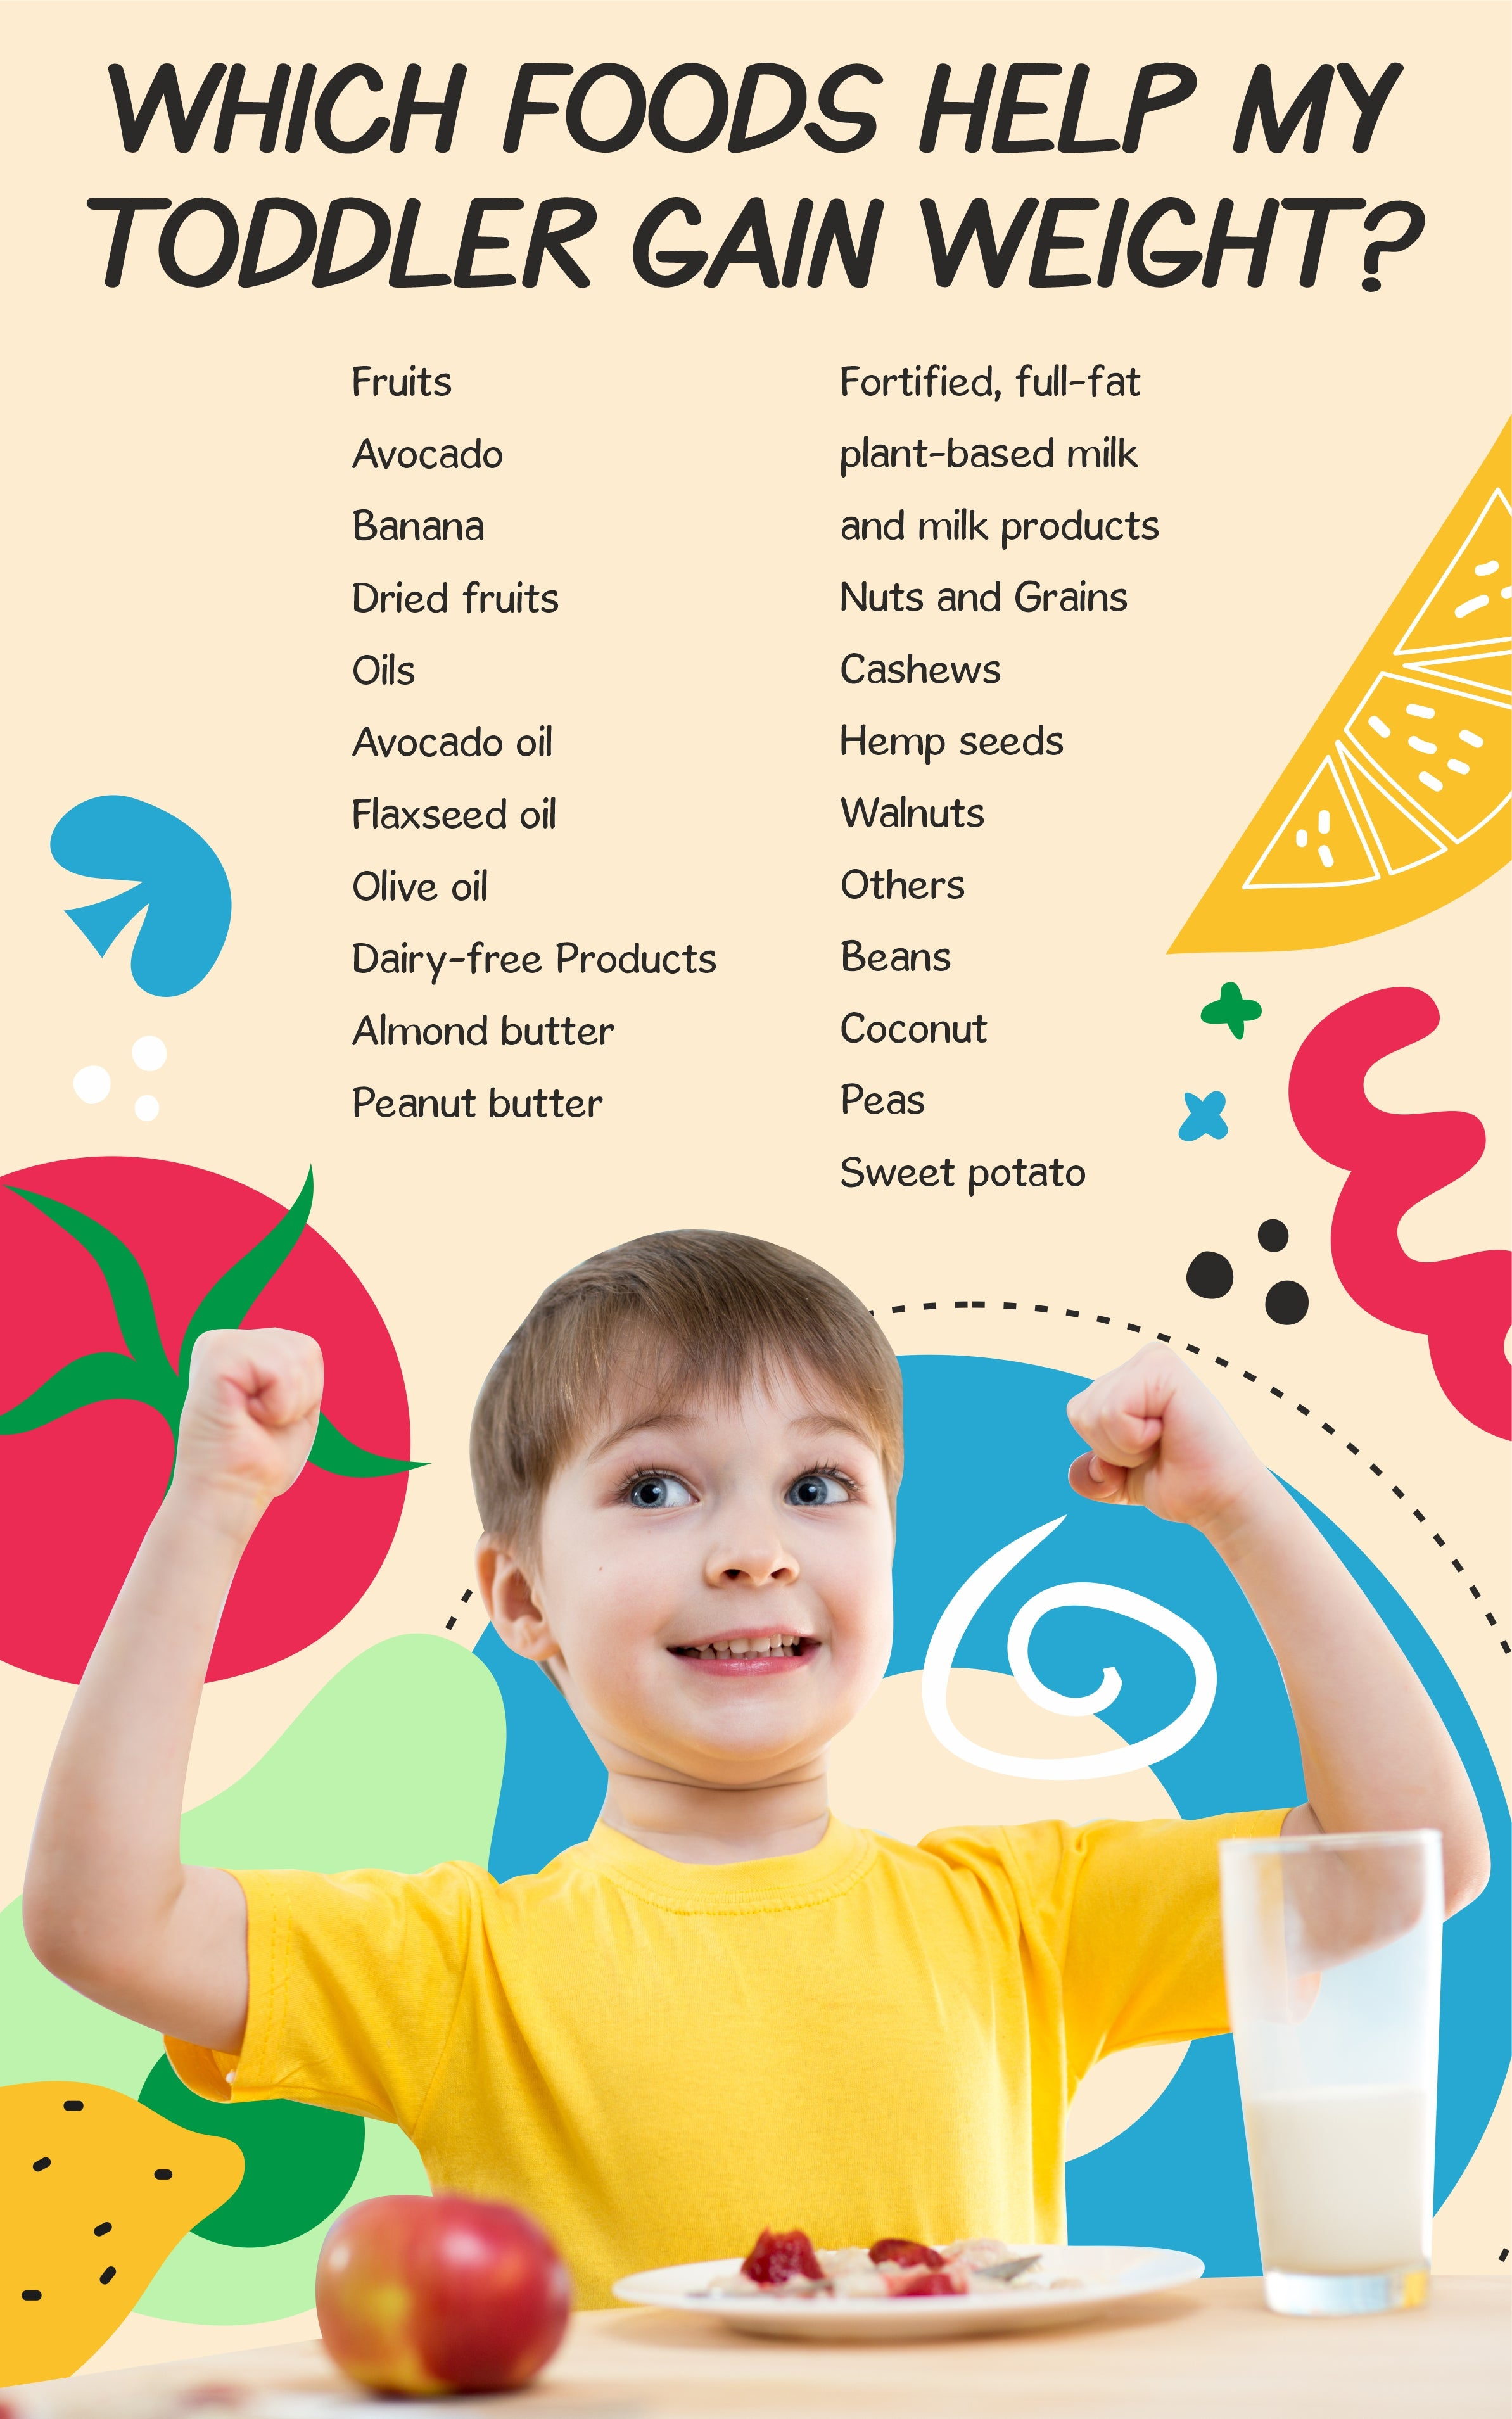 Which Foods Help My Toddler Gain Weight?